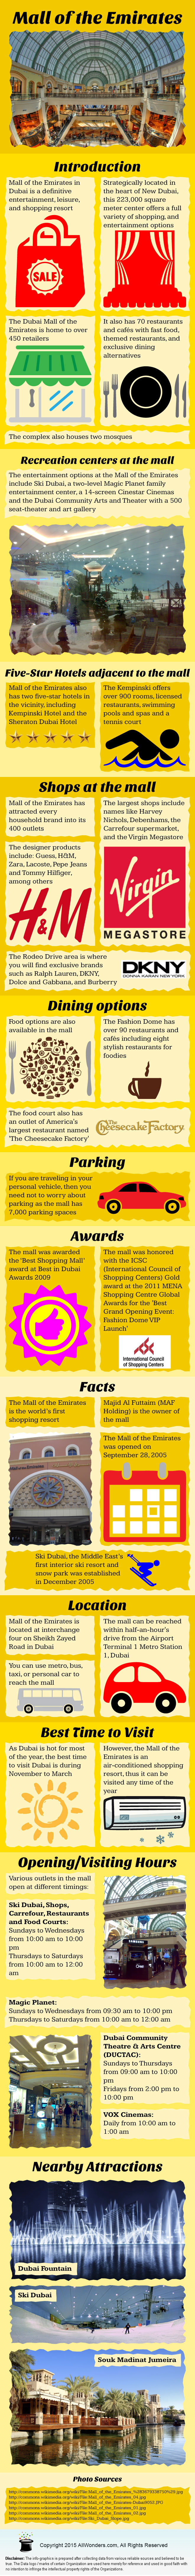 Mall of the Emirates Infographic